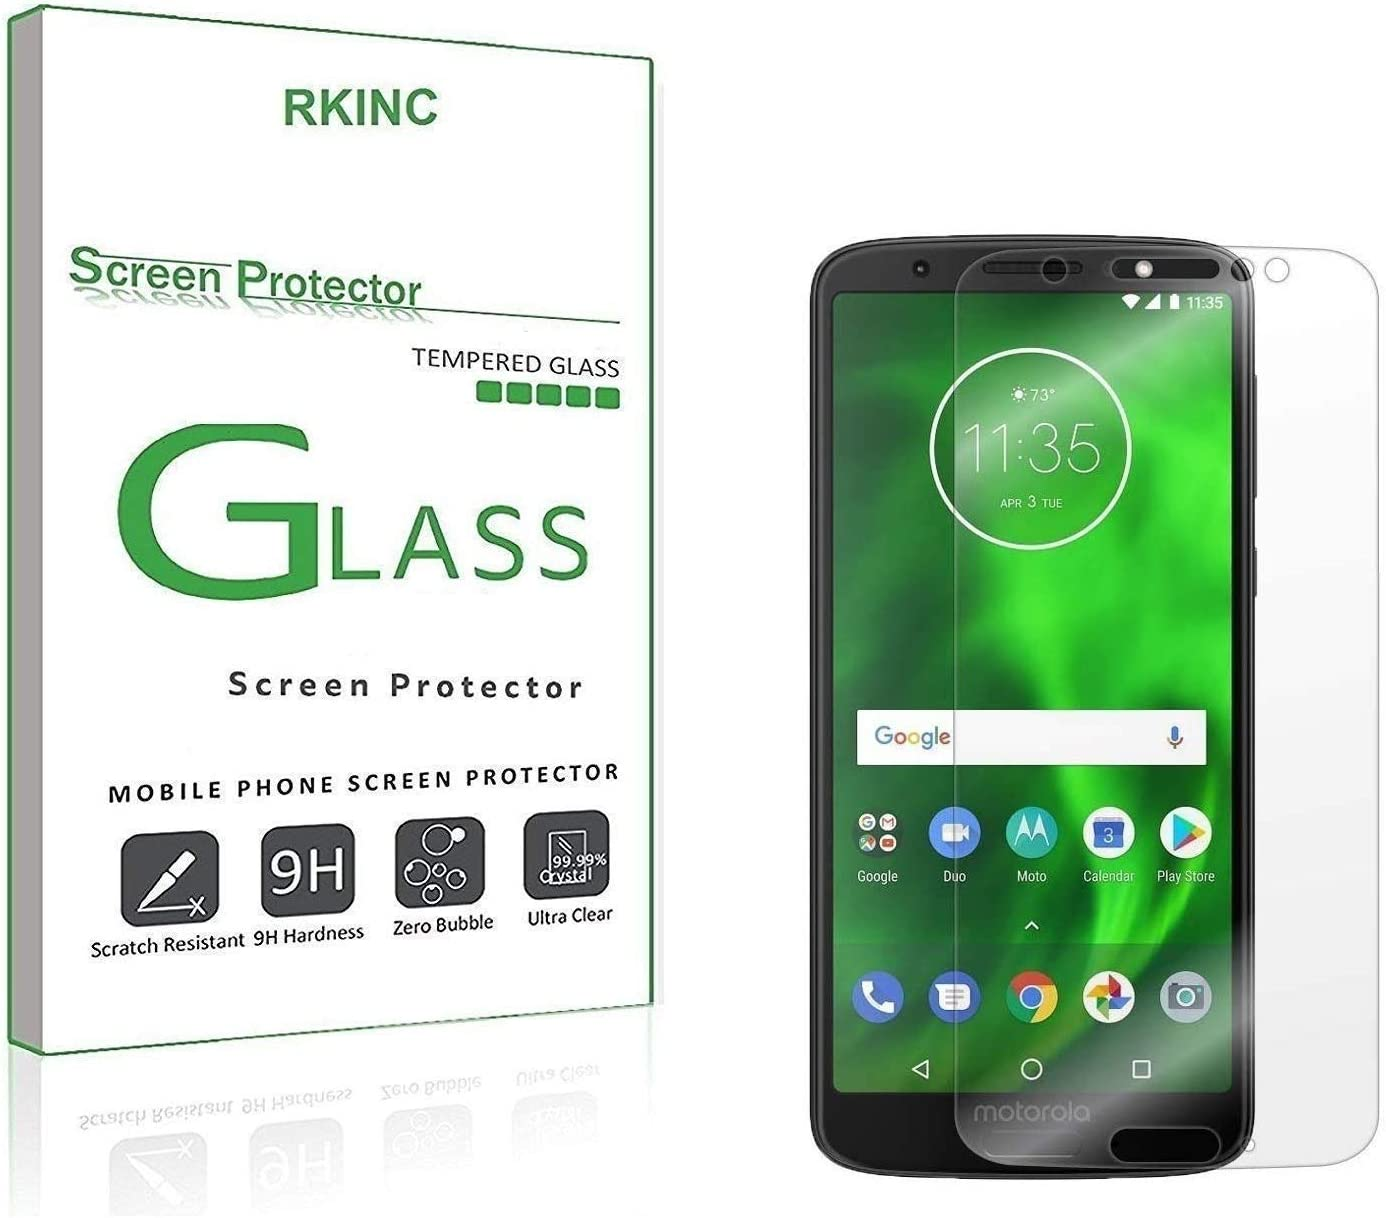 RKINC Screen Protector for Motorola Moto G6, Tempered Glass Screen Protector[0.3mm, 2.5D][Bubble-Free][9H Hardness][Easy Installation][HD Clear] forMotorola Moto G6(2 Pack)